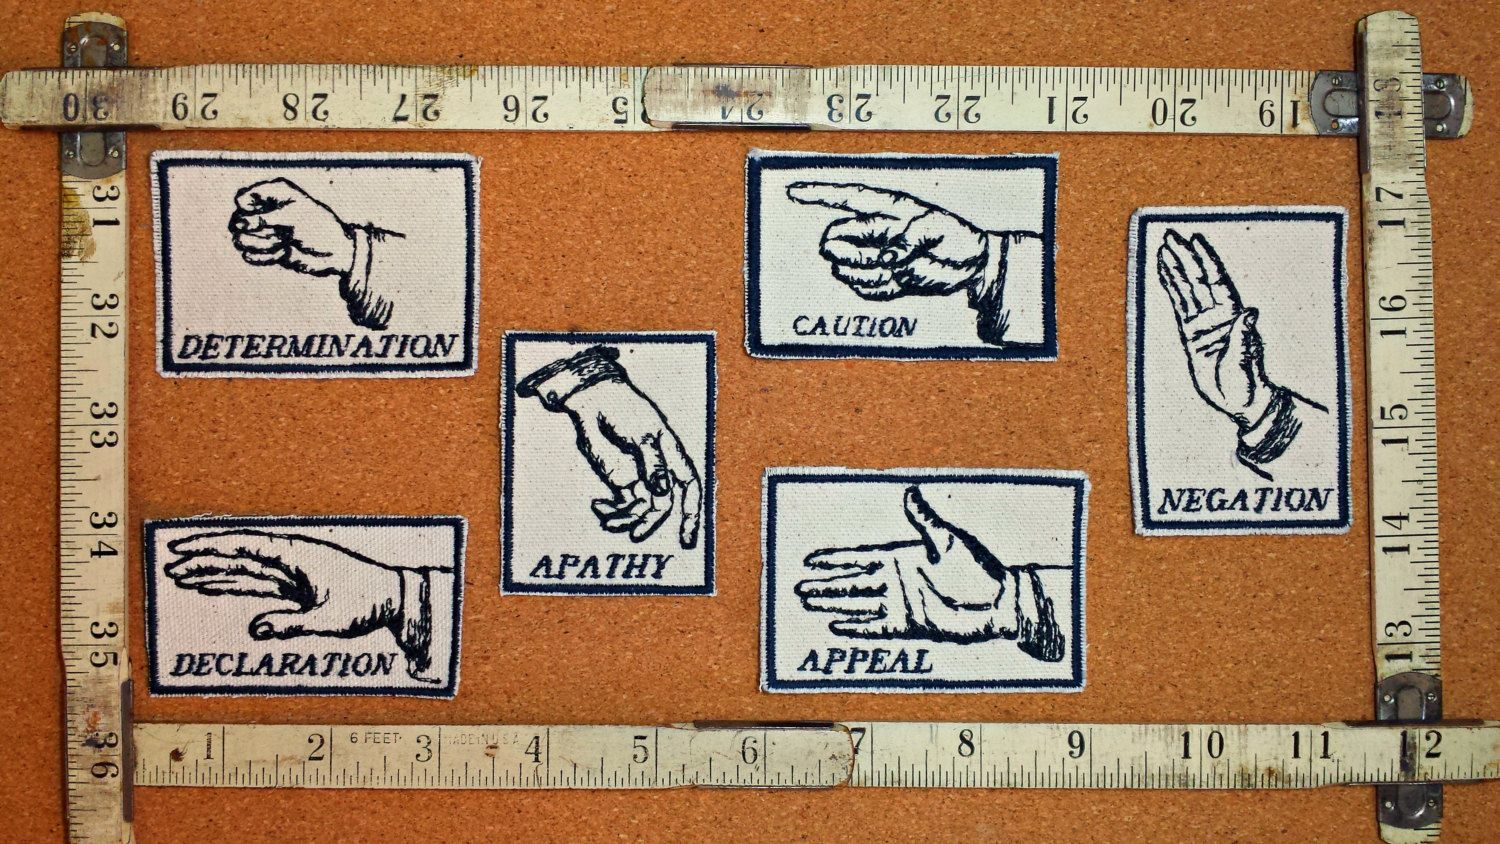 Hand Gesture Set of Six Embroidered Modern Vintage Graphic Upcycled Canvas Jacket Patches by Authenticembroidery on Etsy